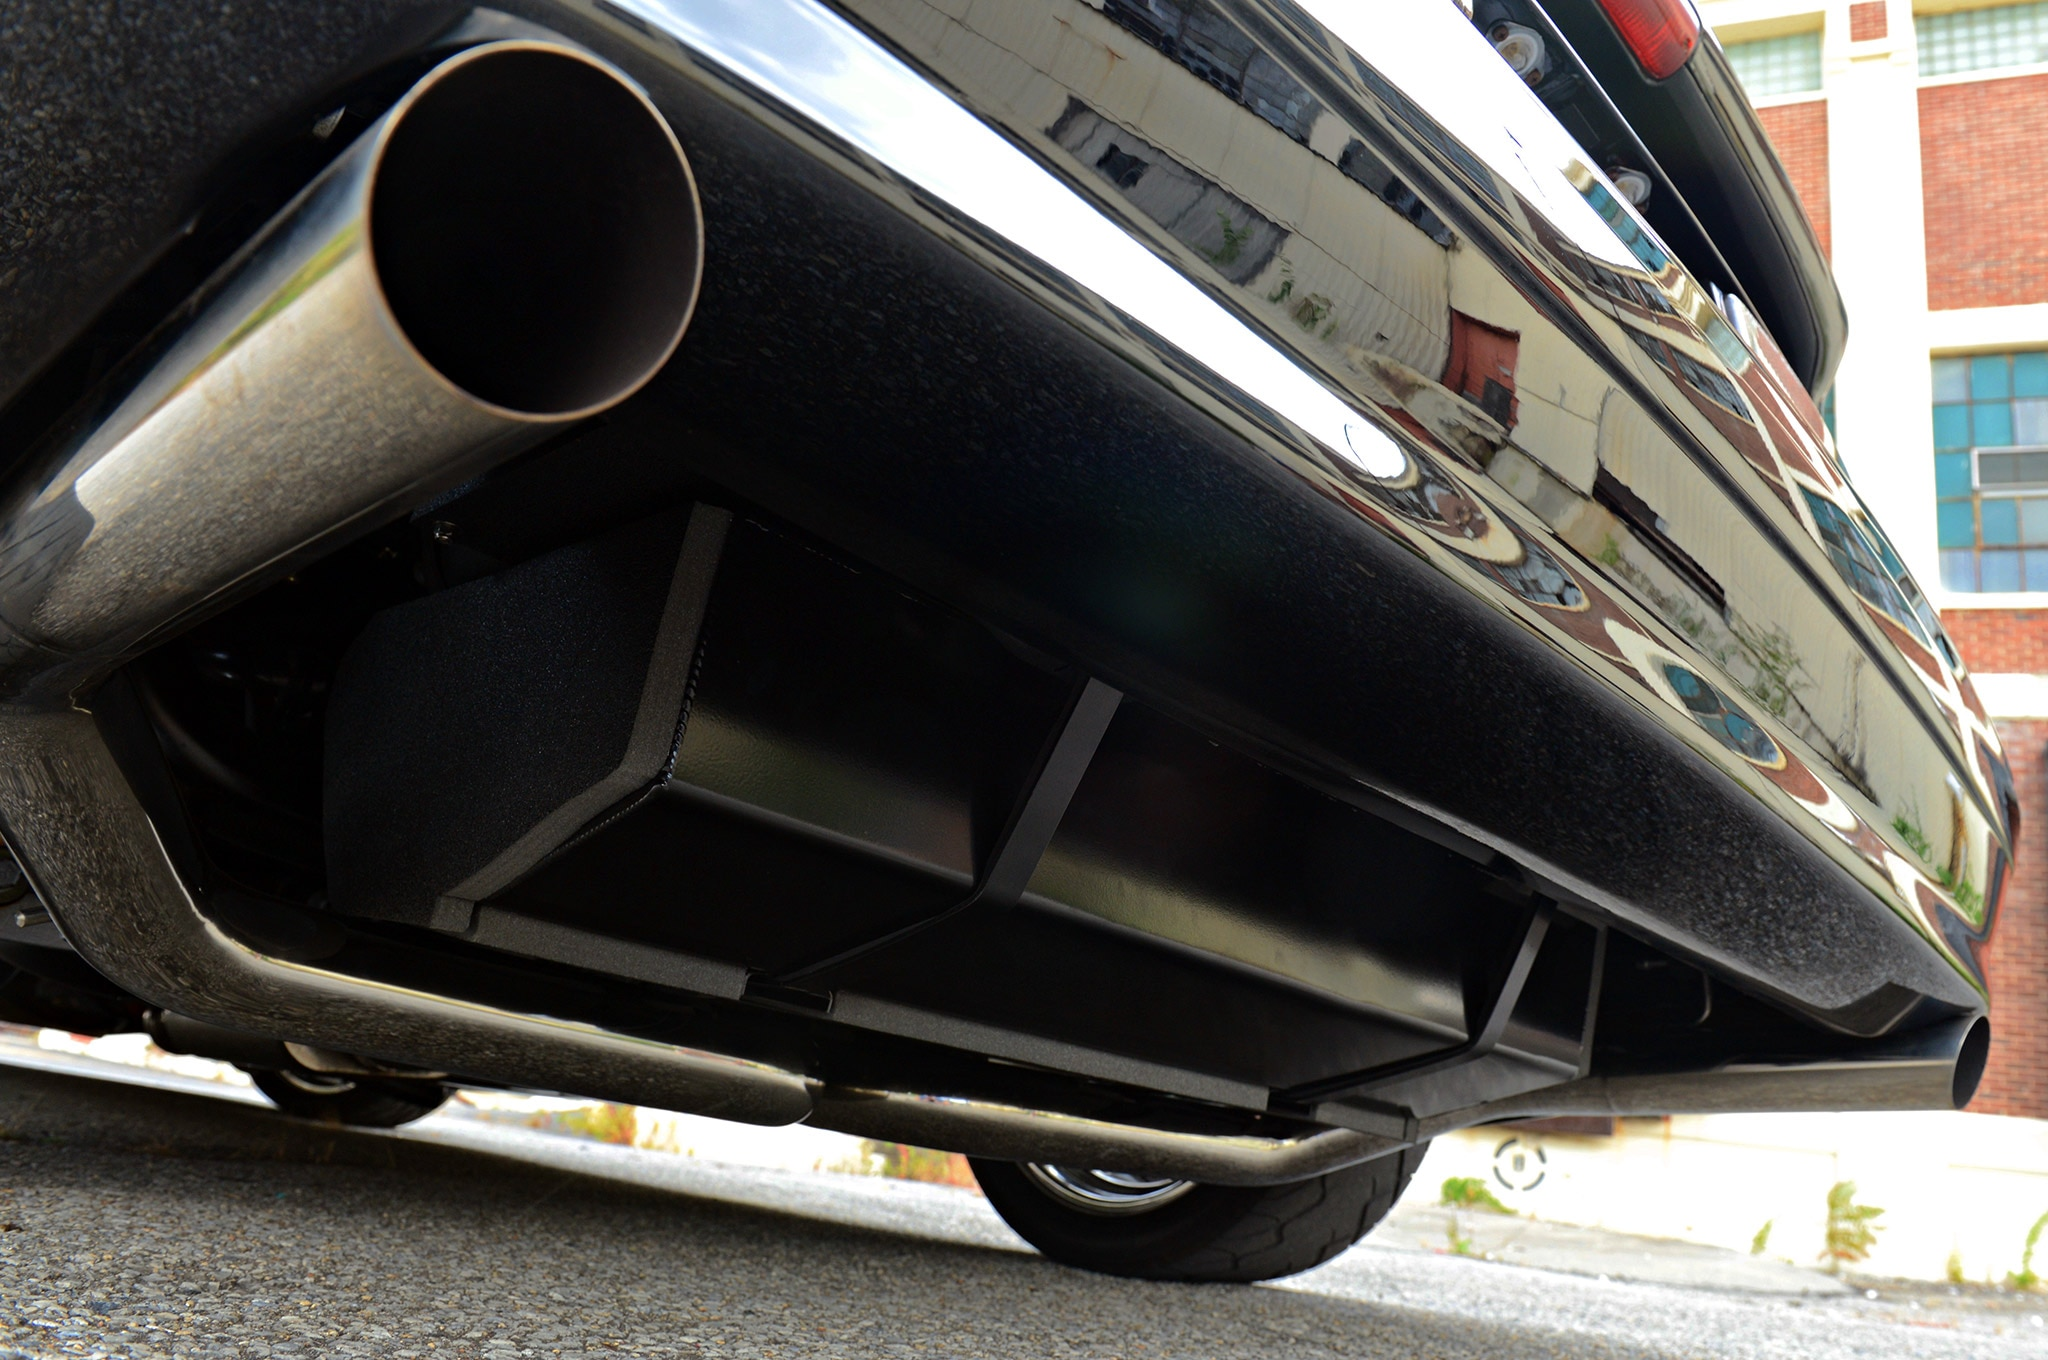 1988 Ford Mustang Gt Hartrick 88 Exhaust